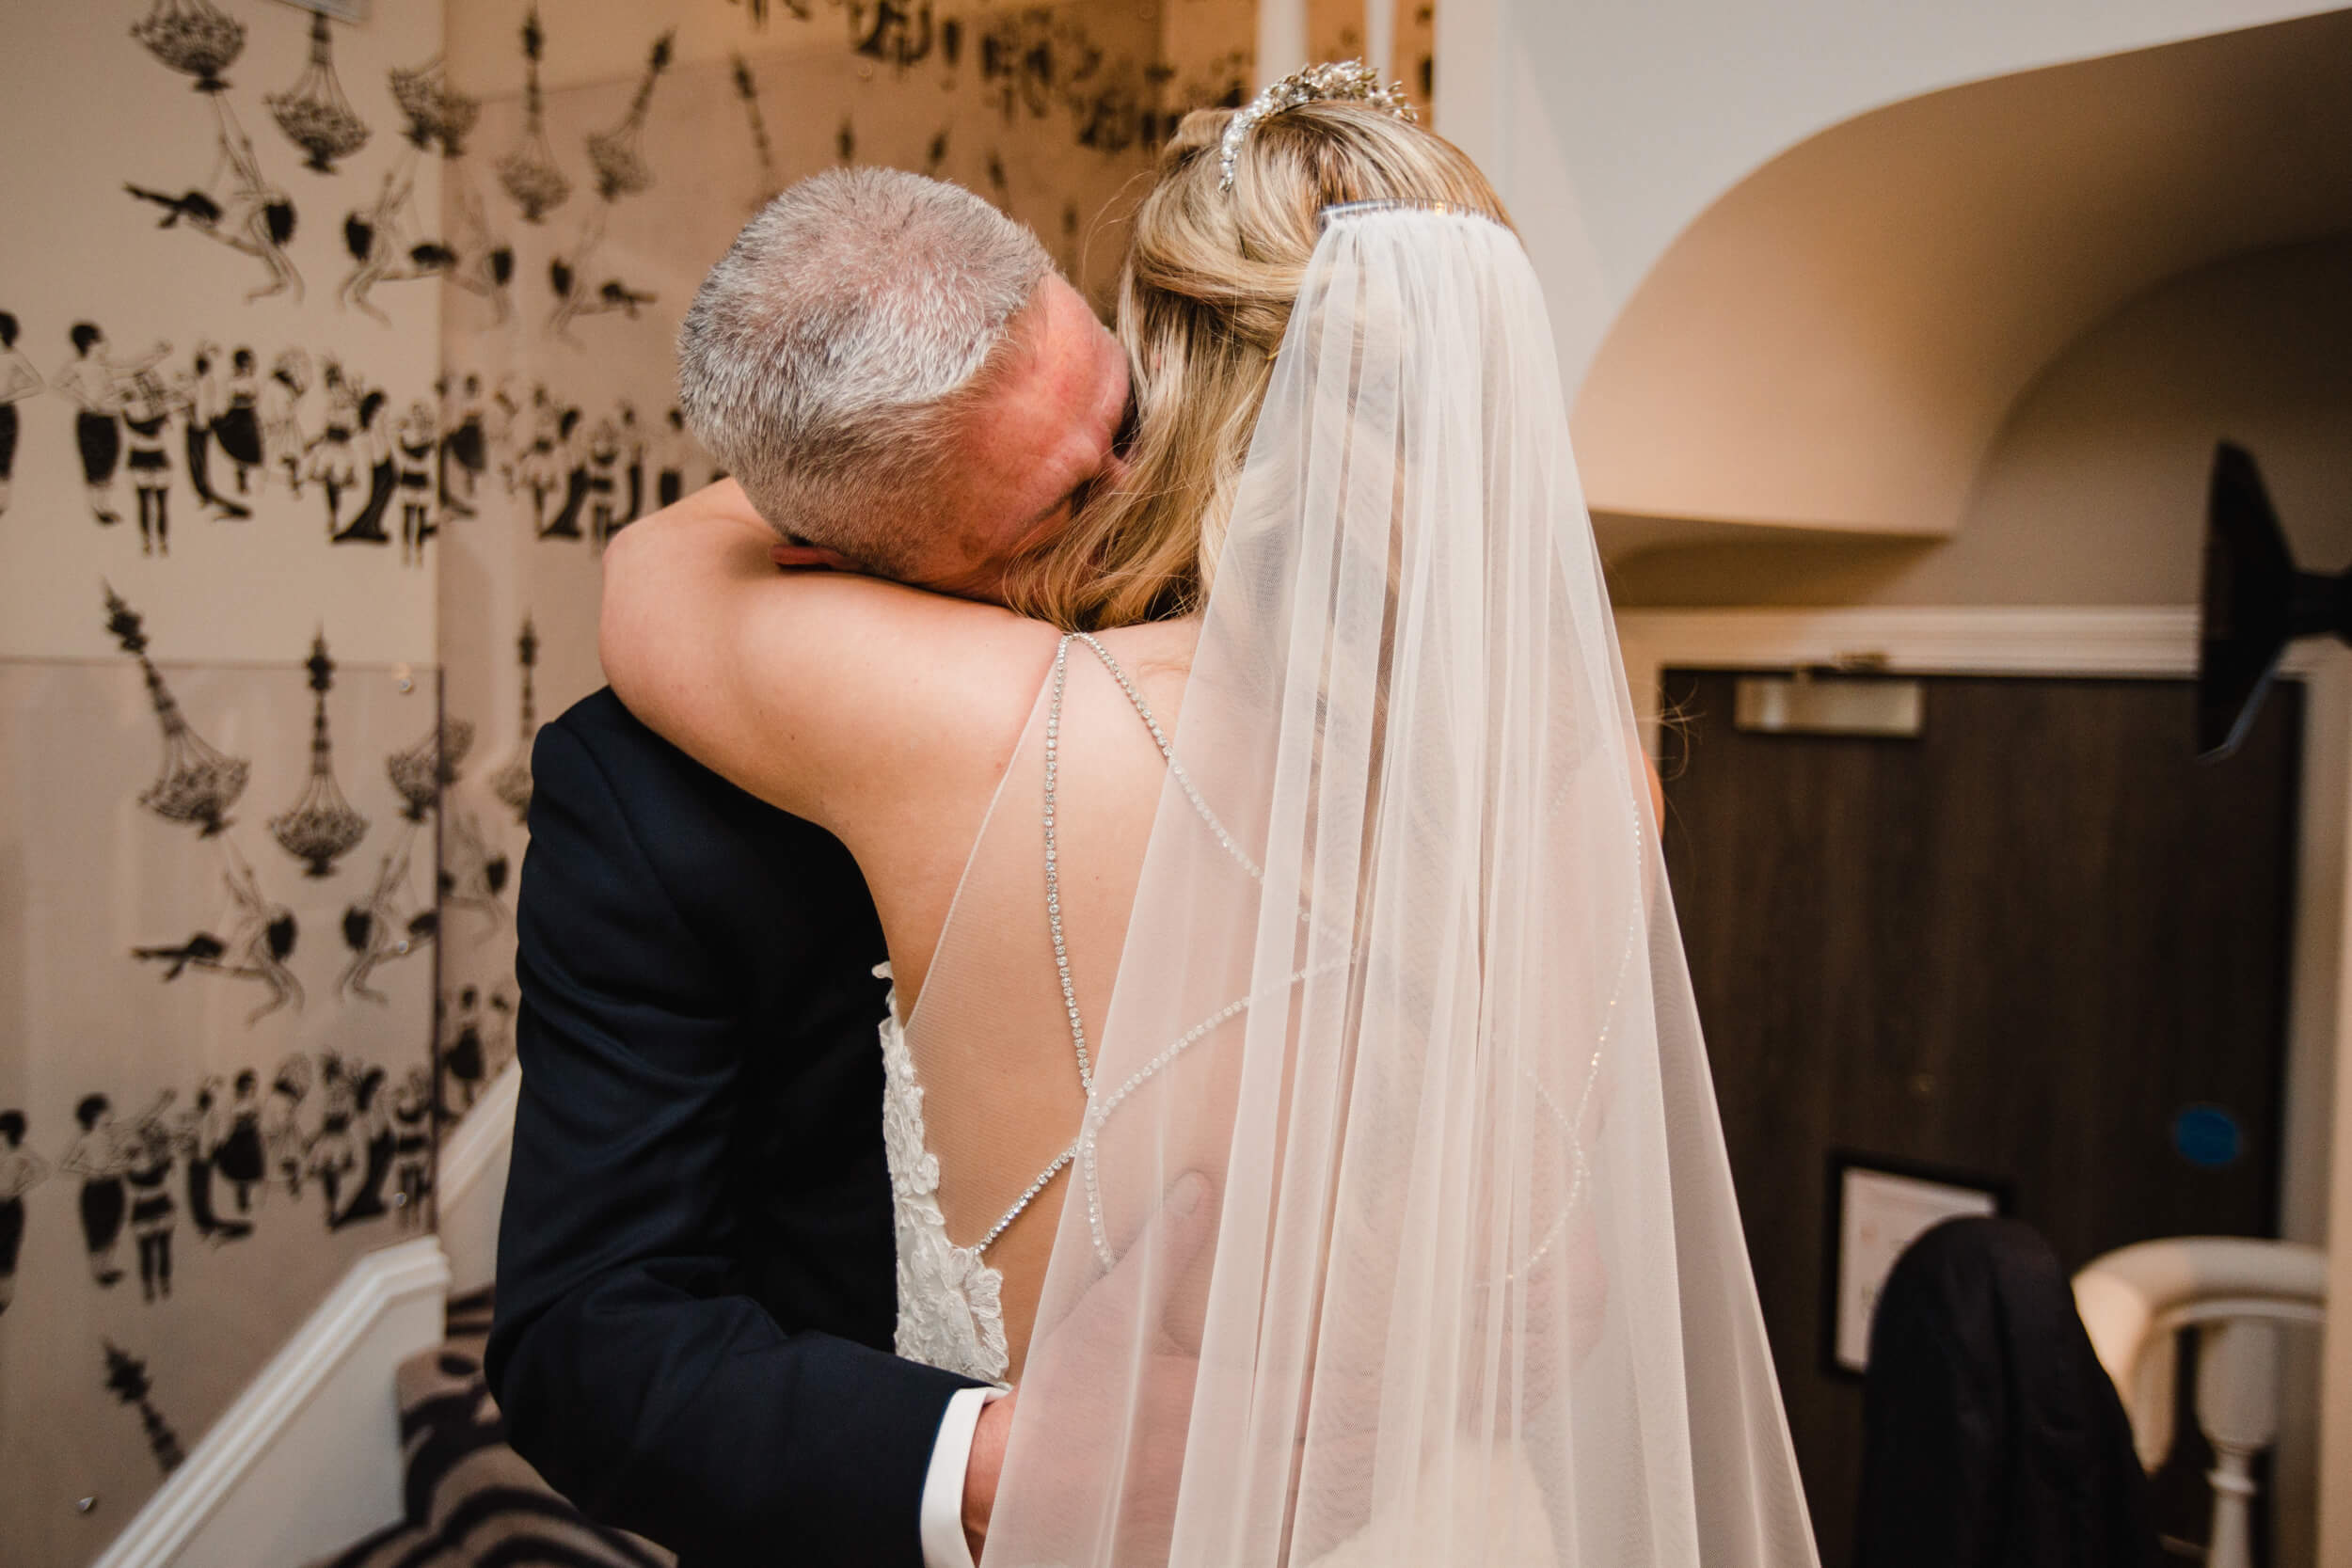 close intimate photograph of father hugging bride before wedding ceremony